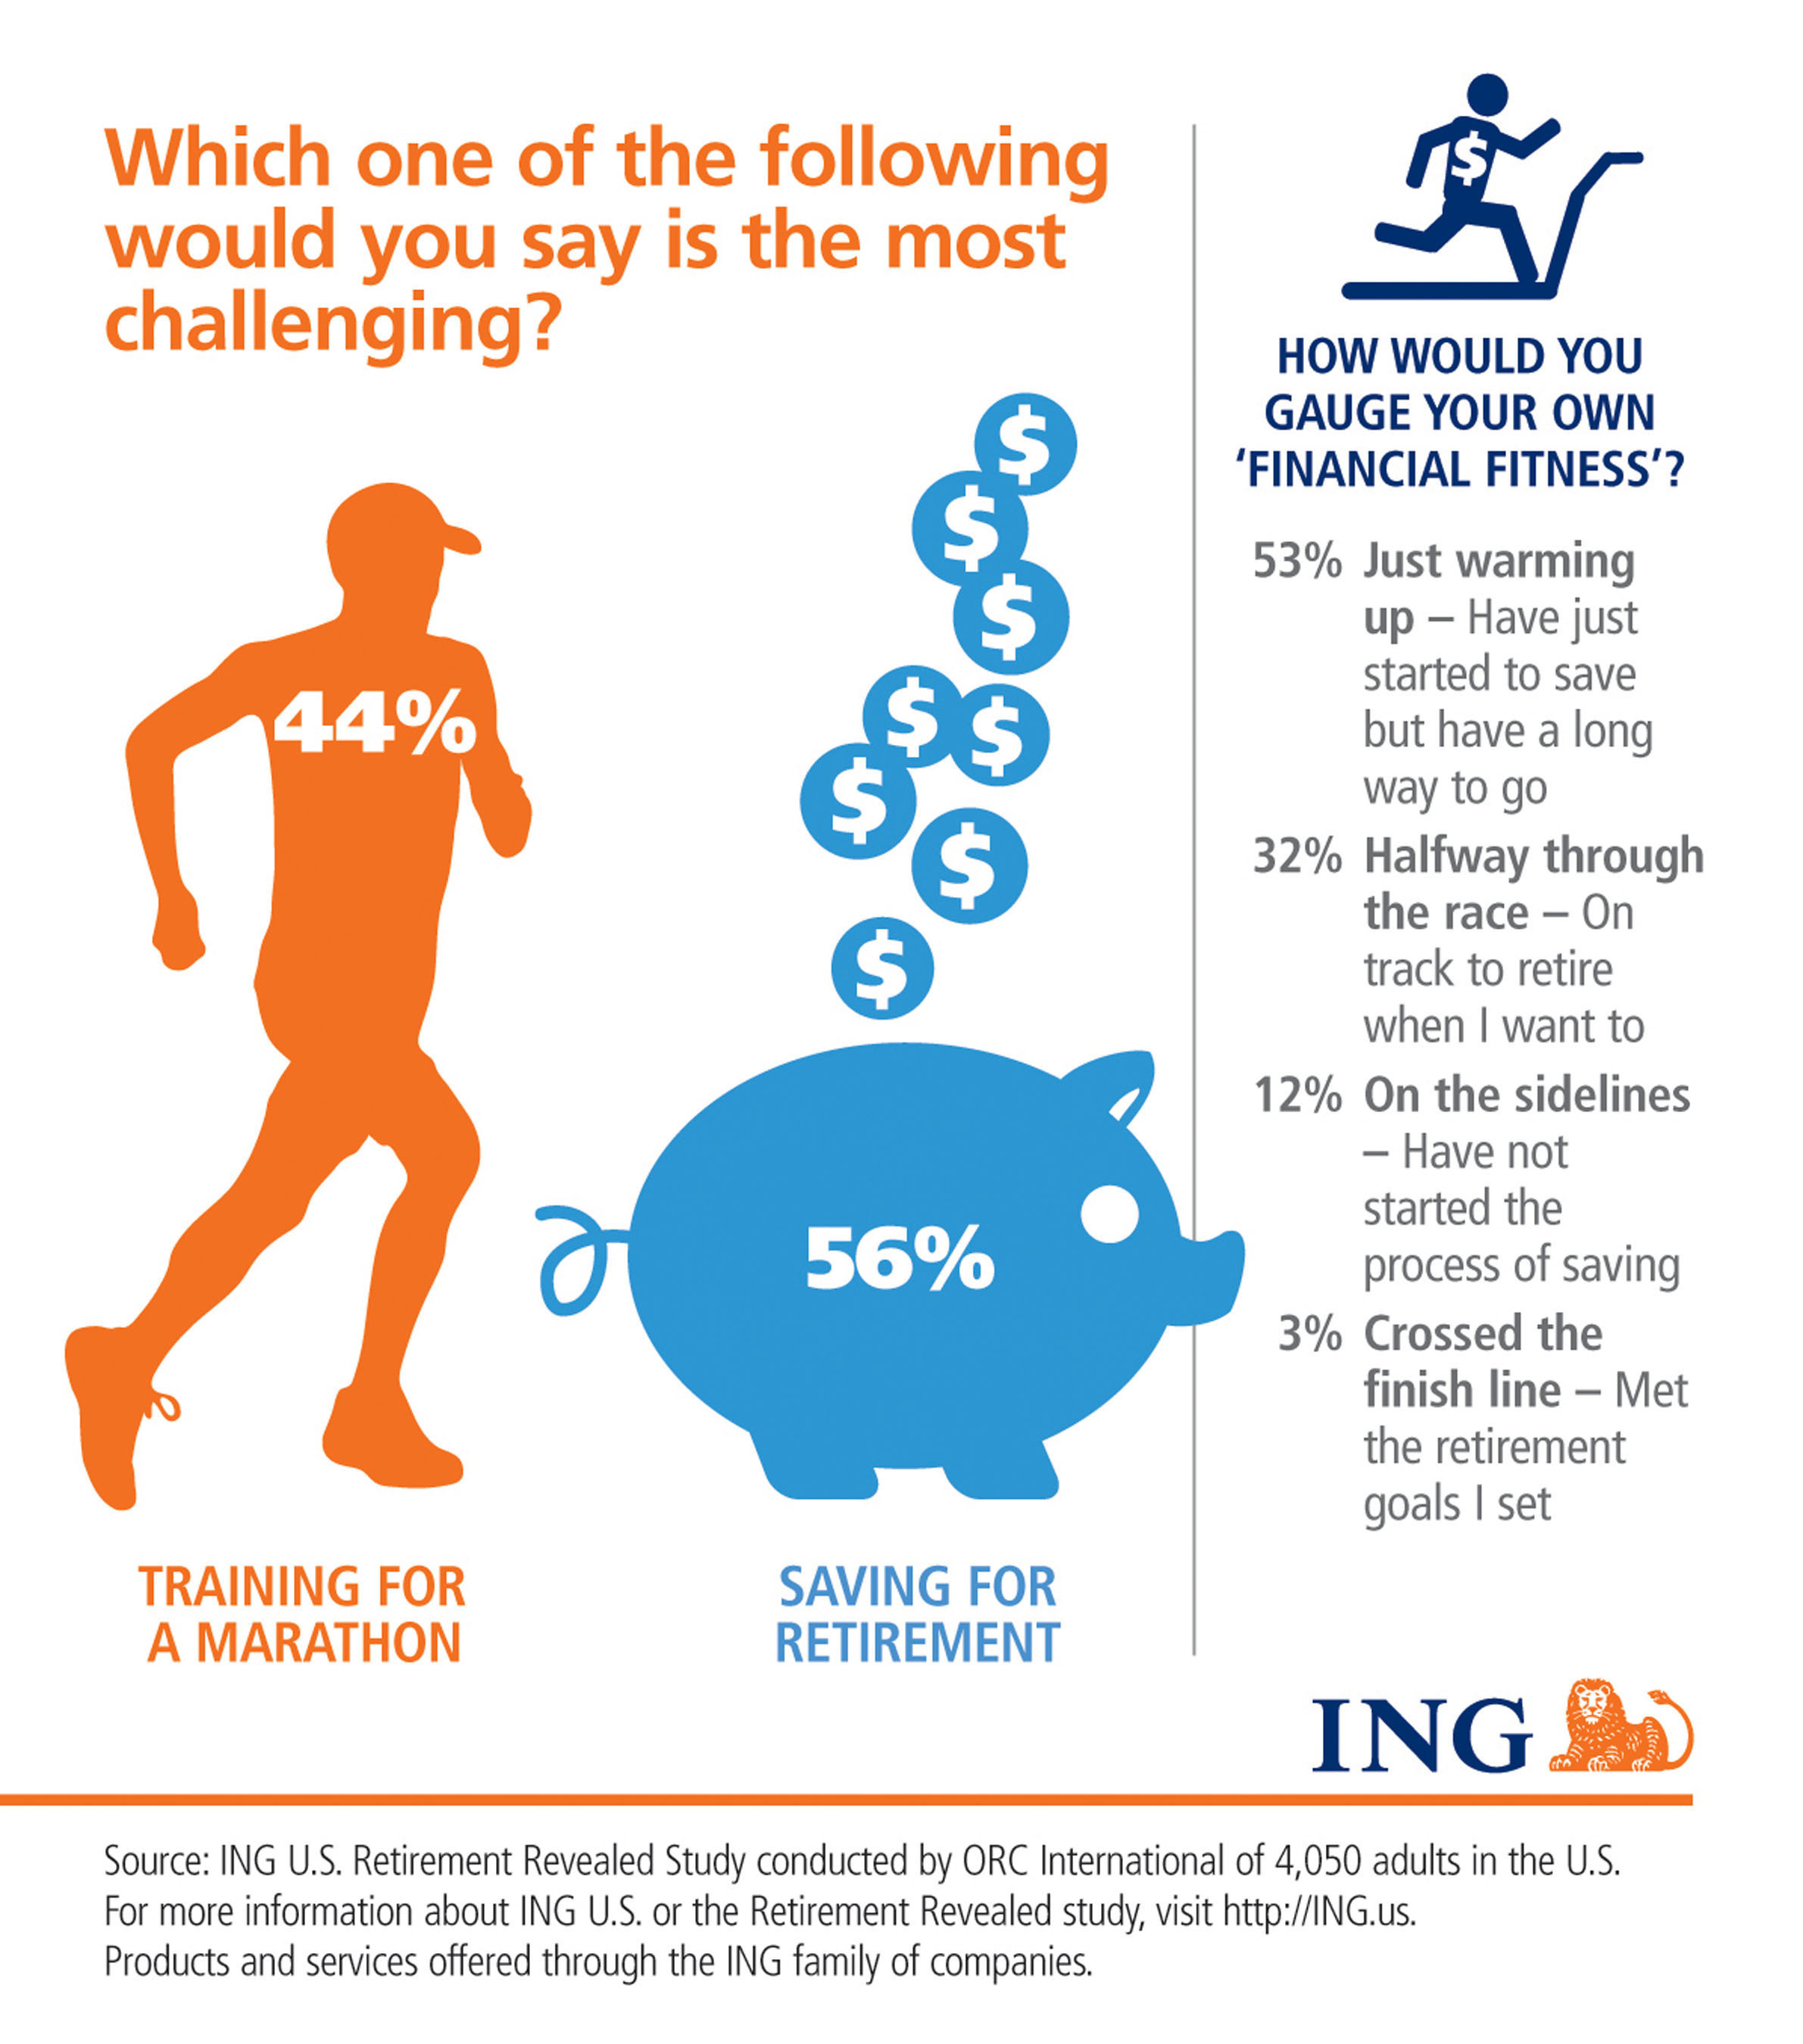 ING U.S. Poll Shows More Americans Must Enter the Retirement 'Race'